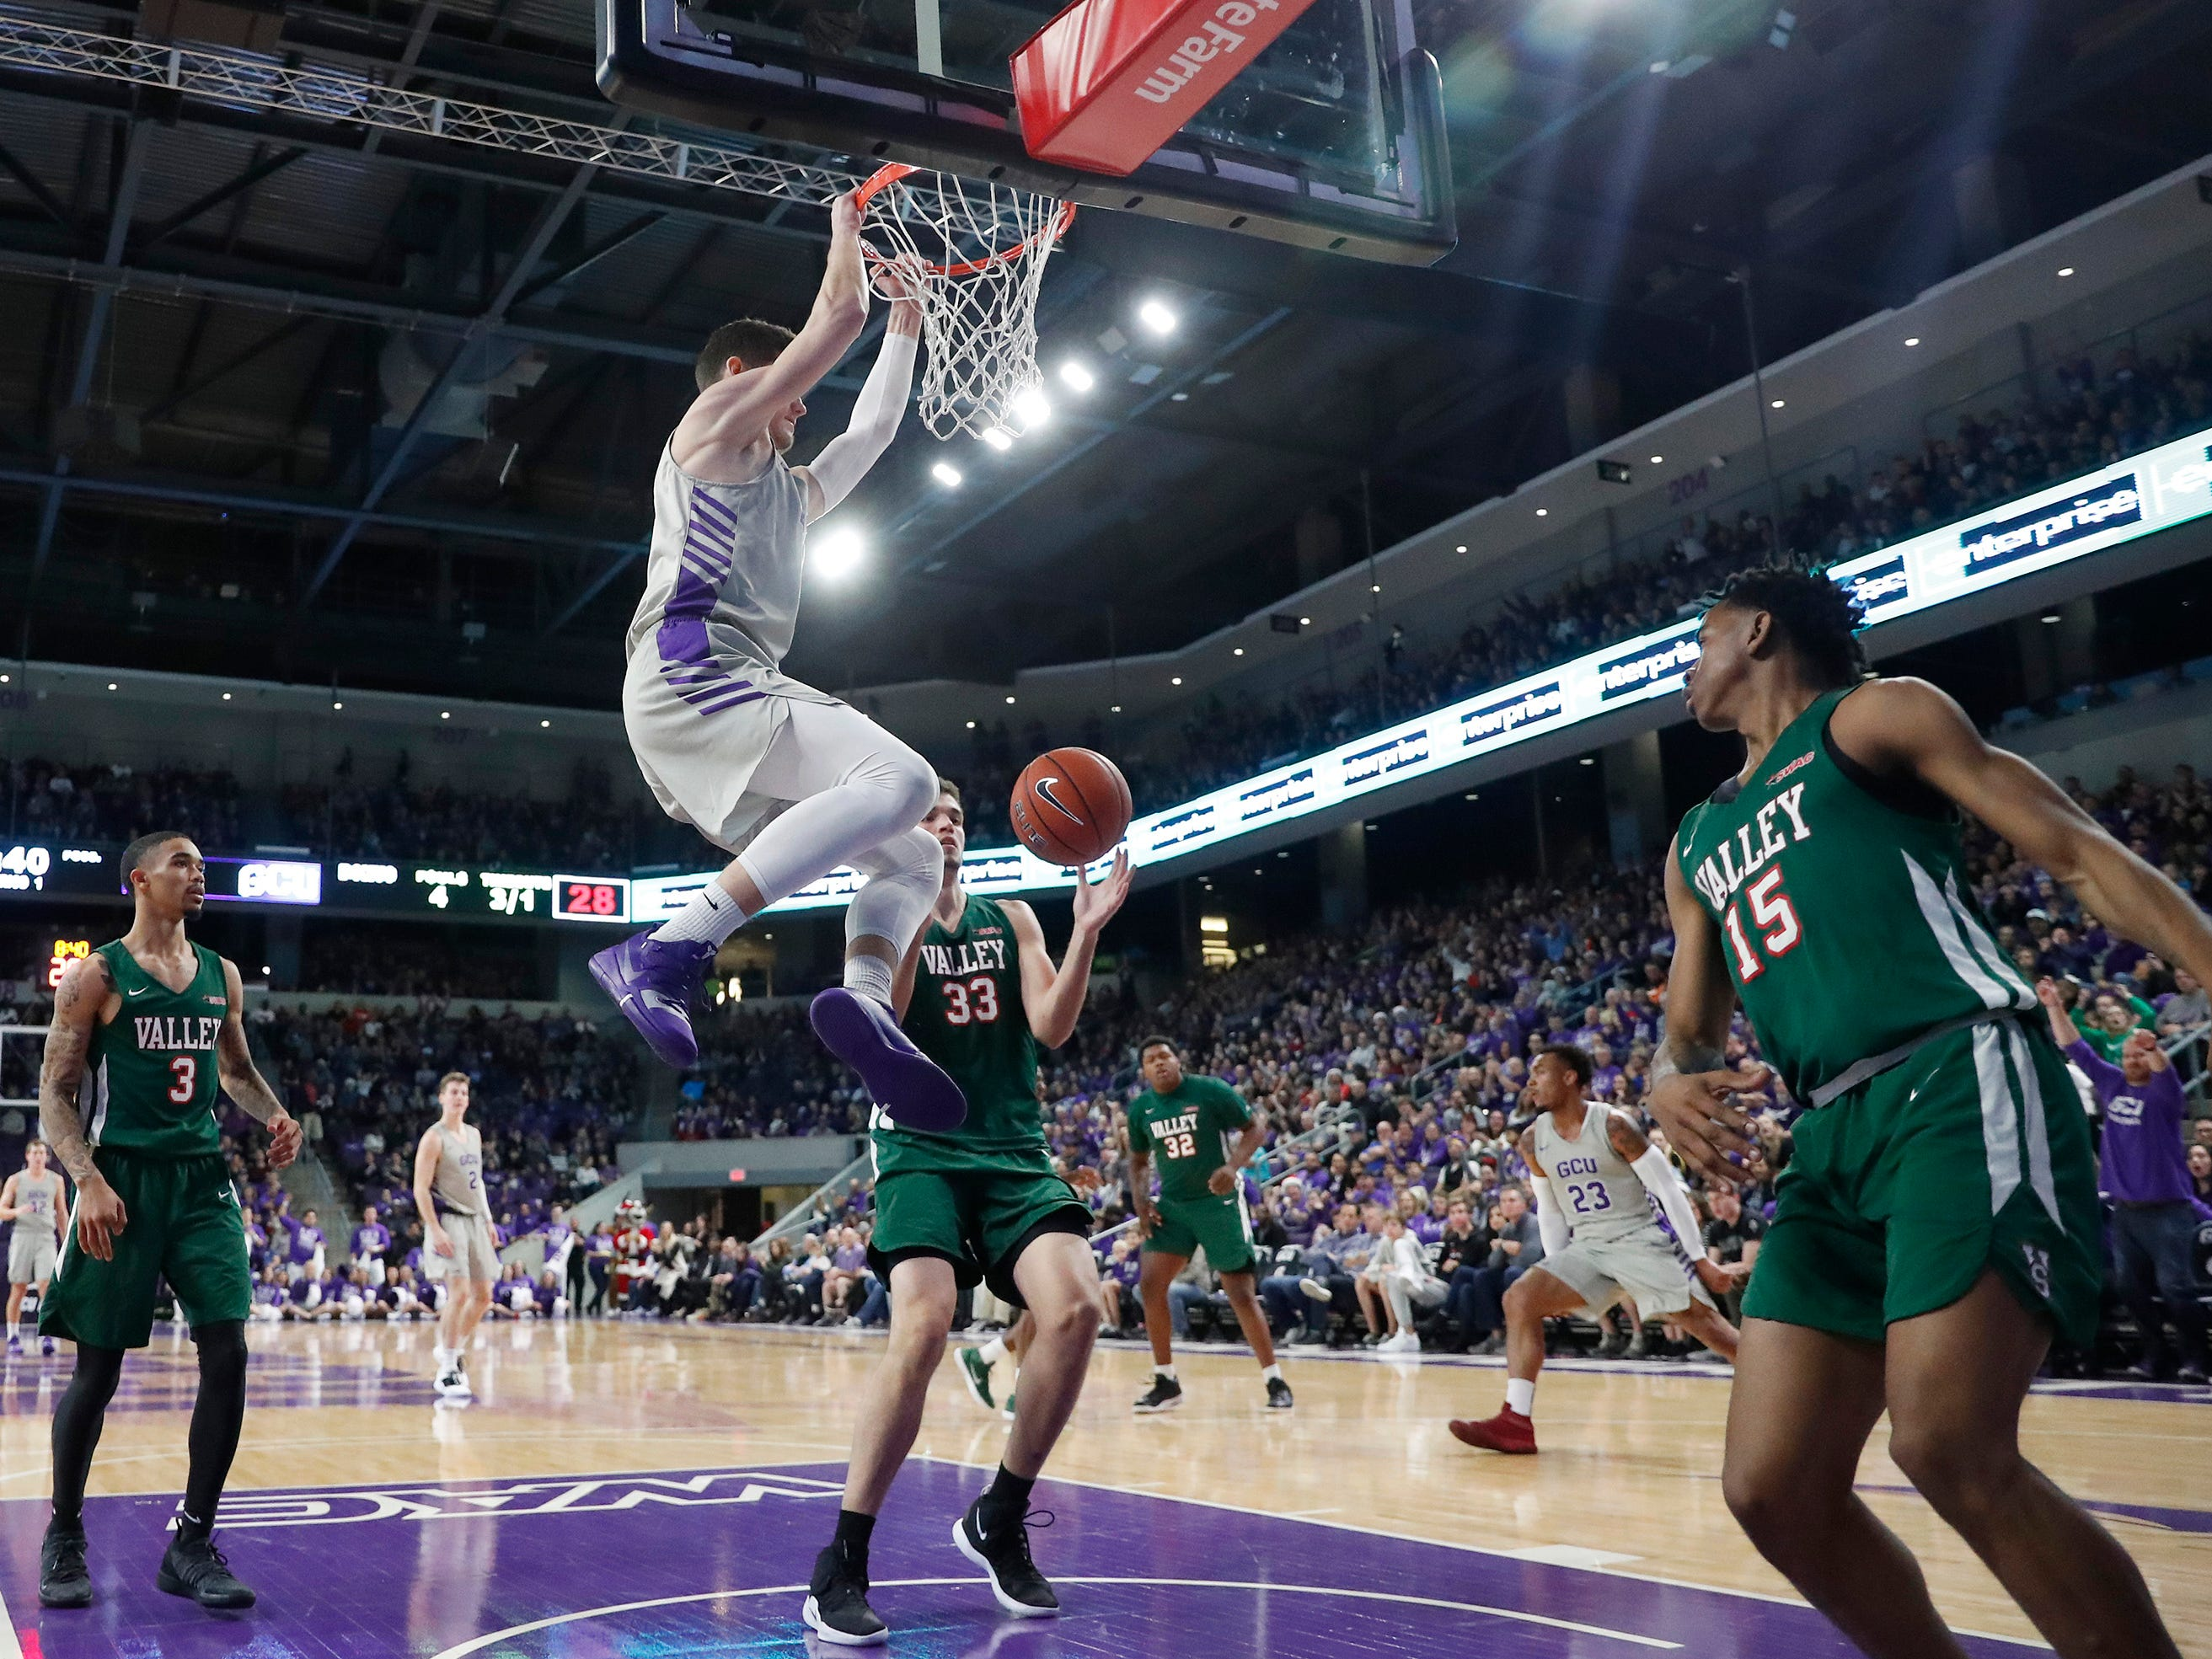 Grand Canyon's Trey Drechsel scores against Mississippi Valley State.